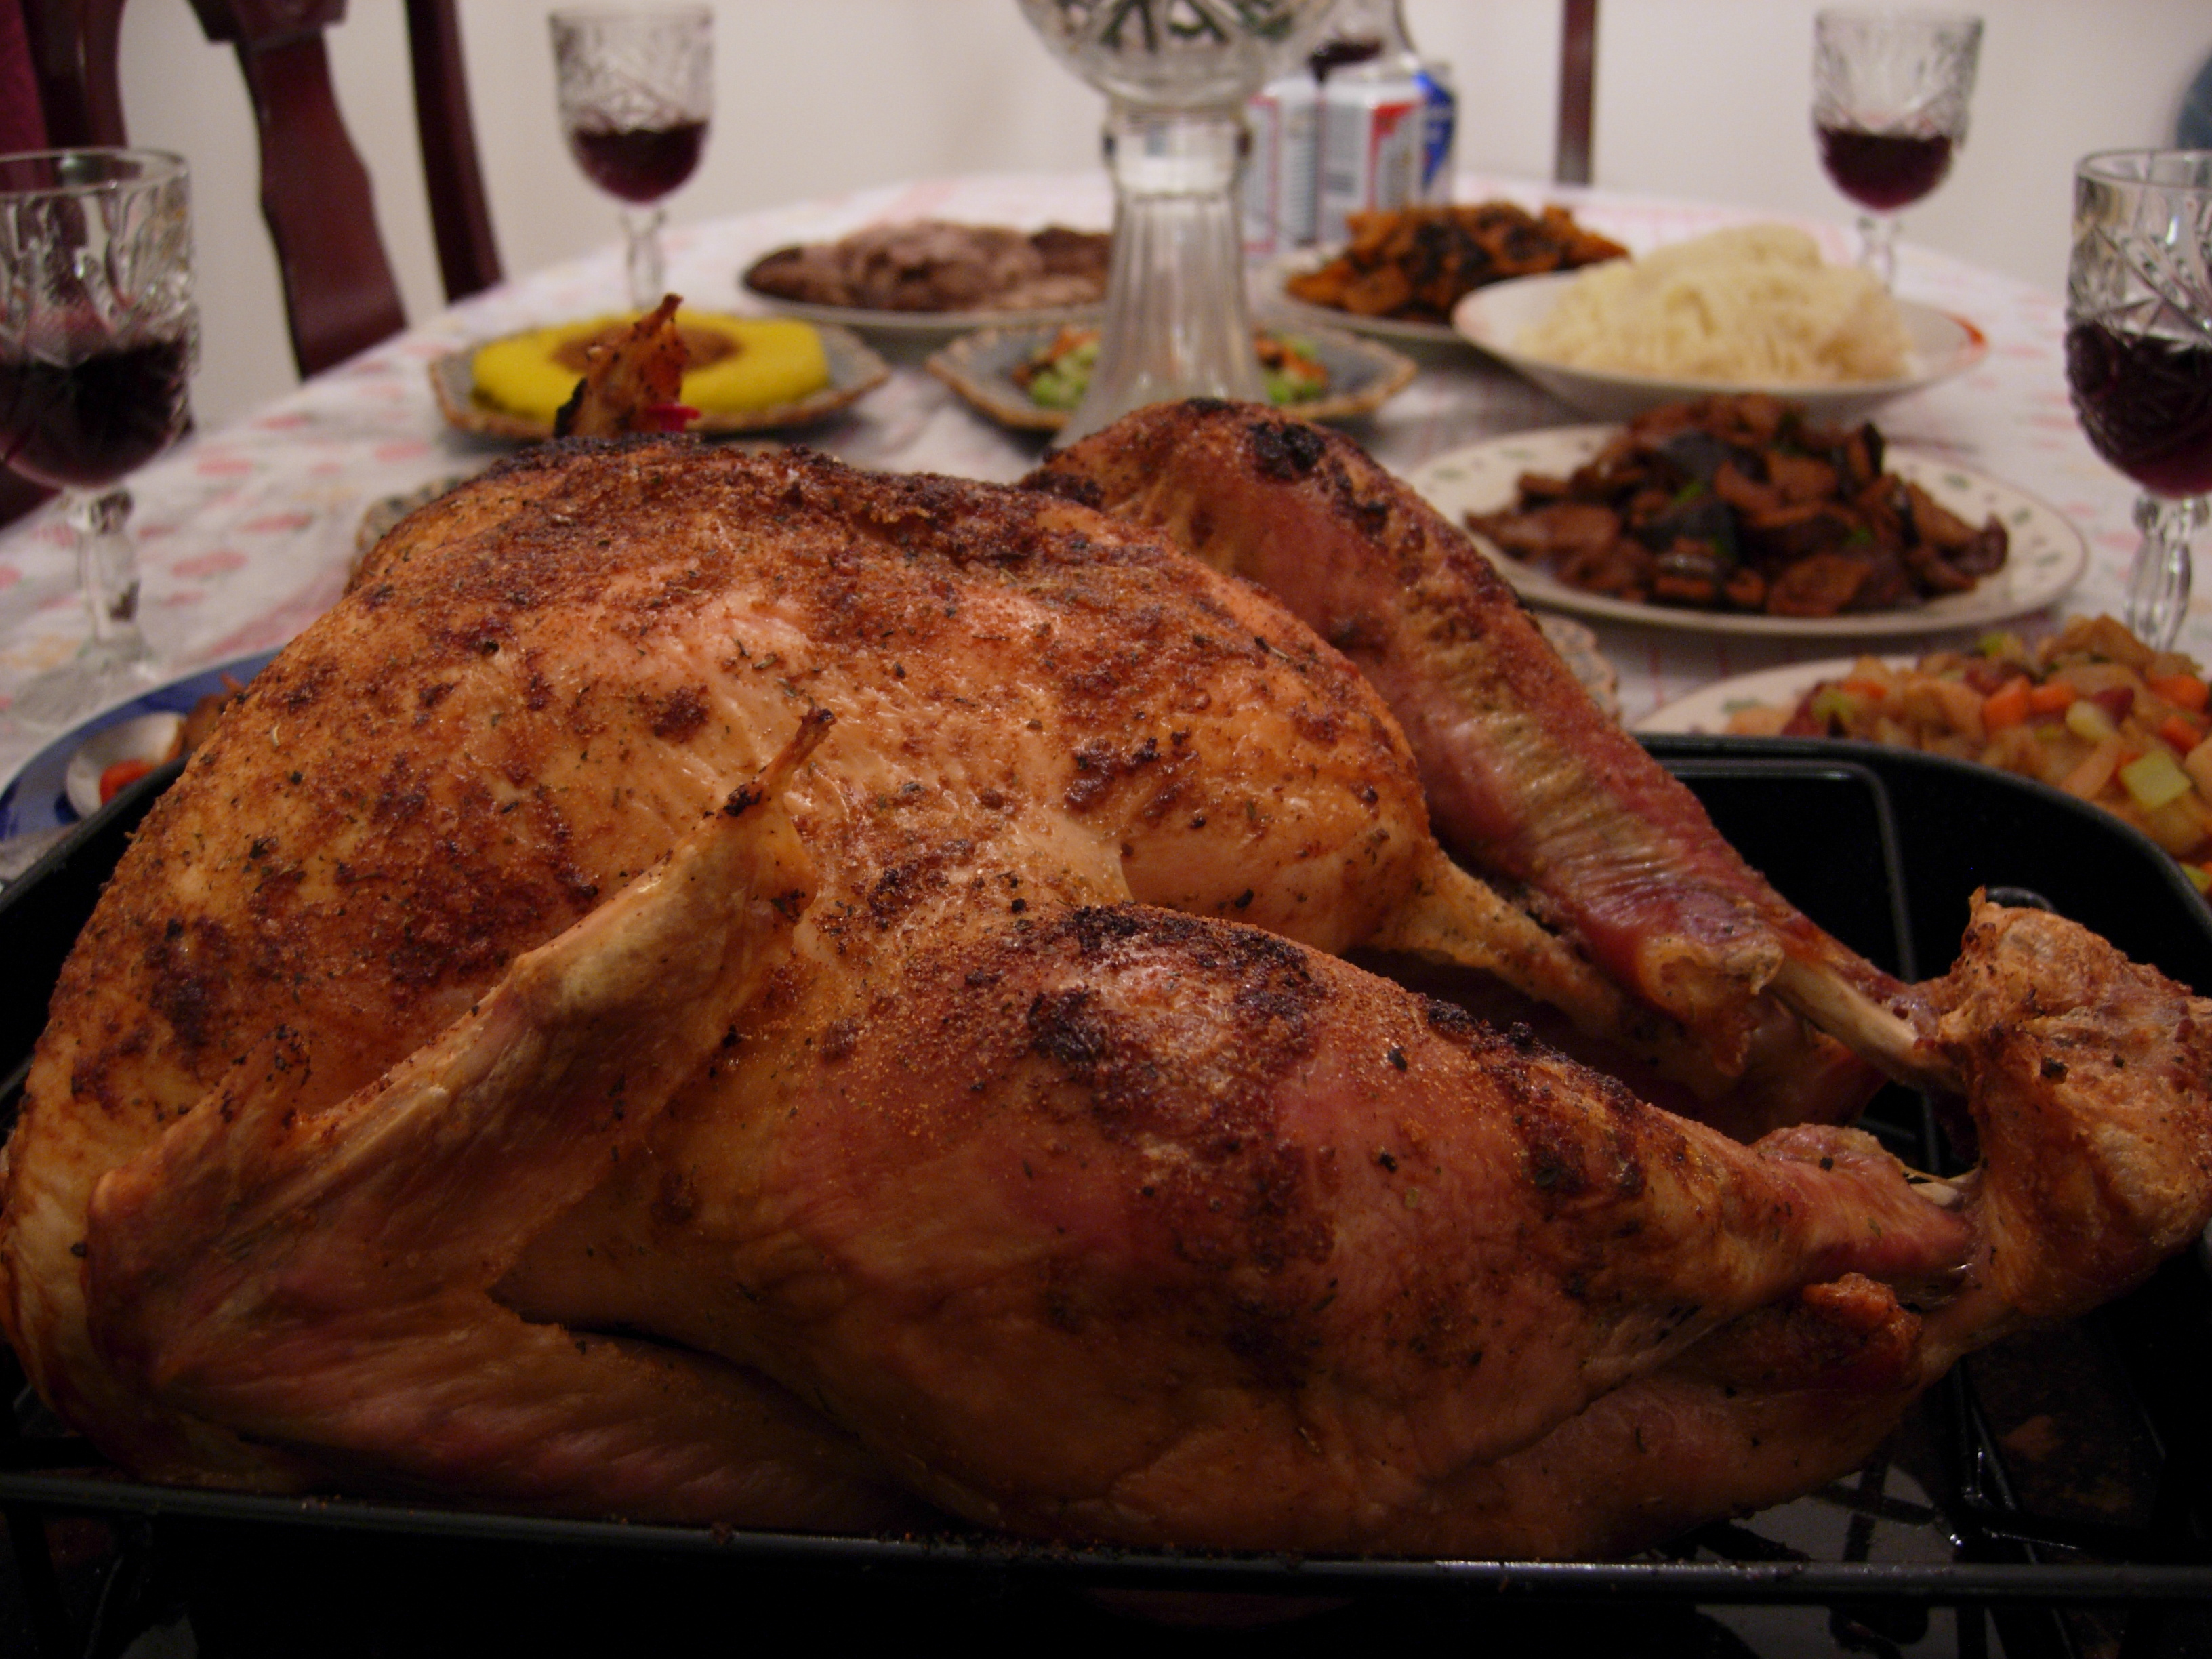 American Test Kitchen Turkey November 2007 My Edible Memories